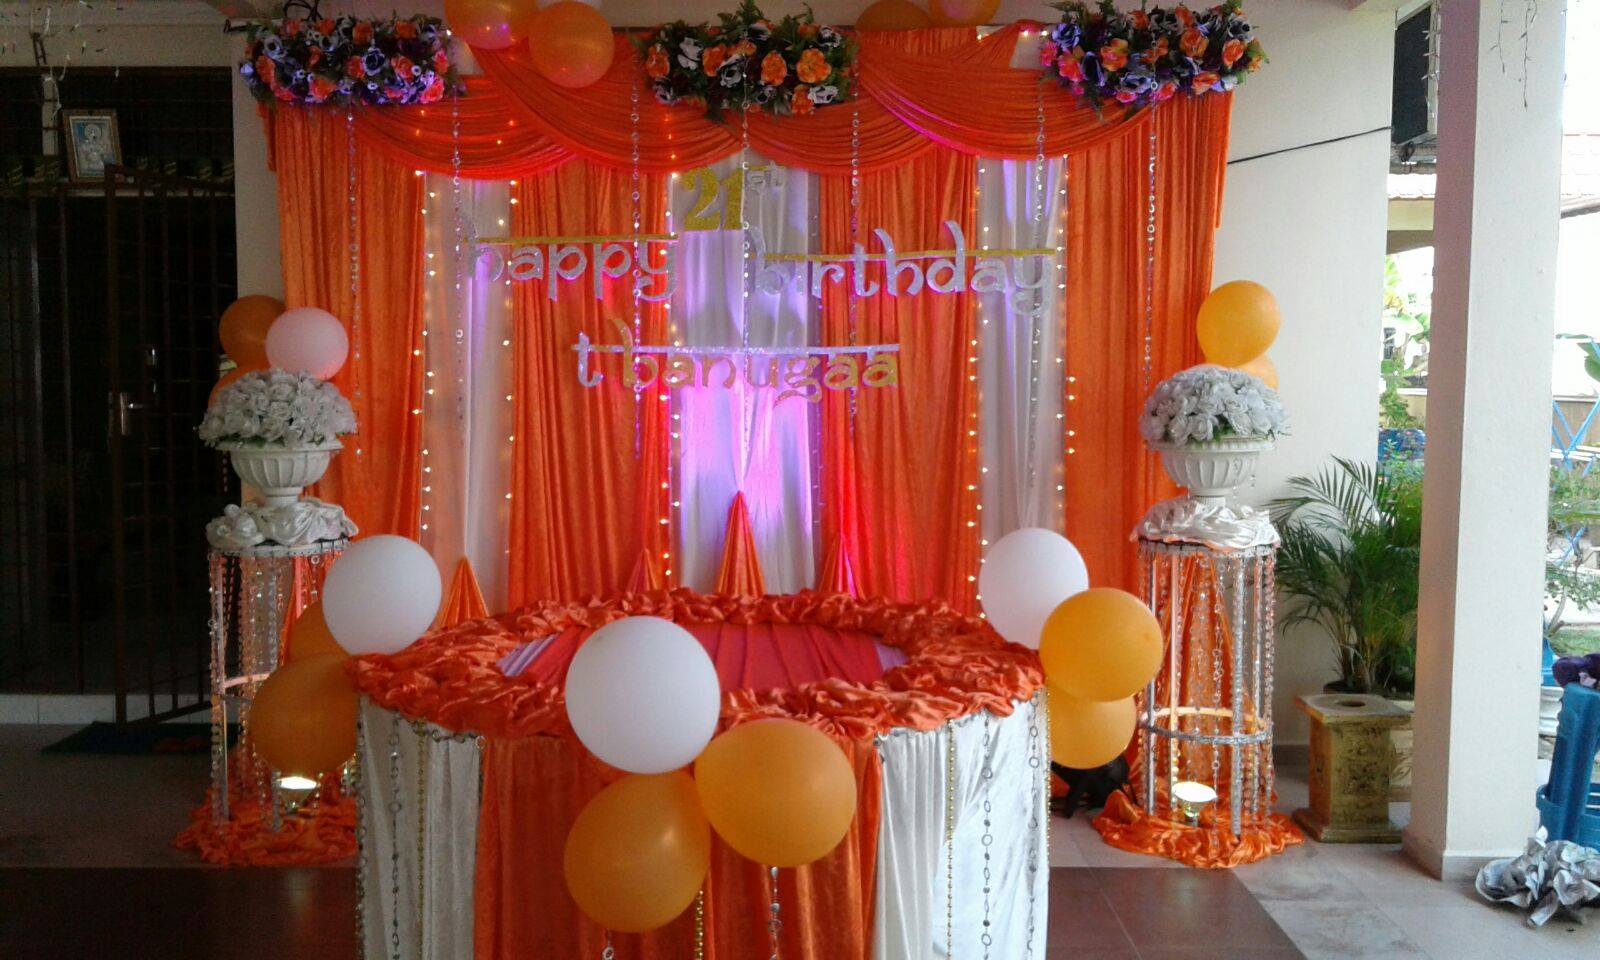 Kisha mega events 21st birthday decoration orange white for 21st birthday decoration ideas